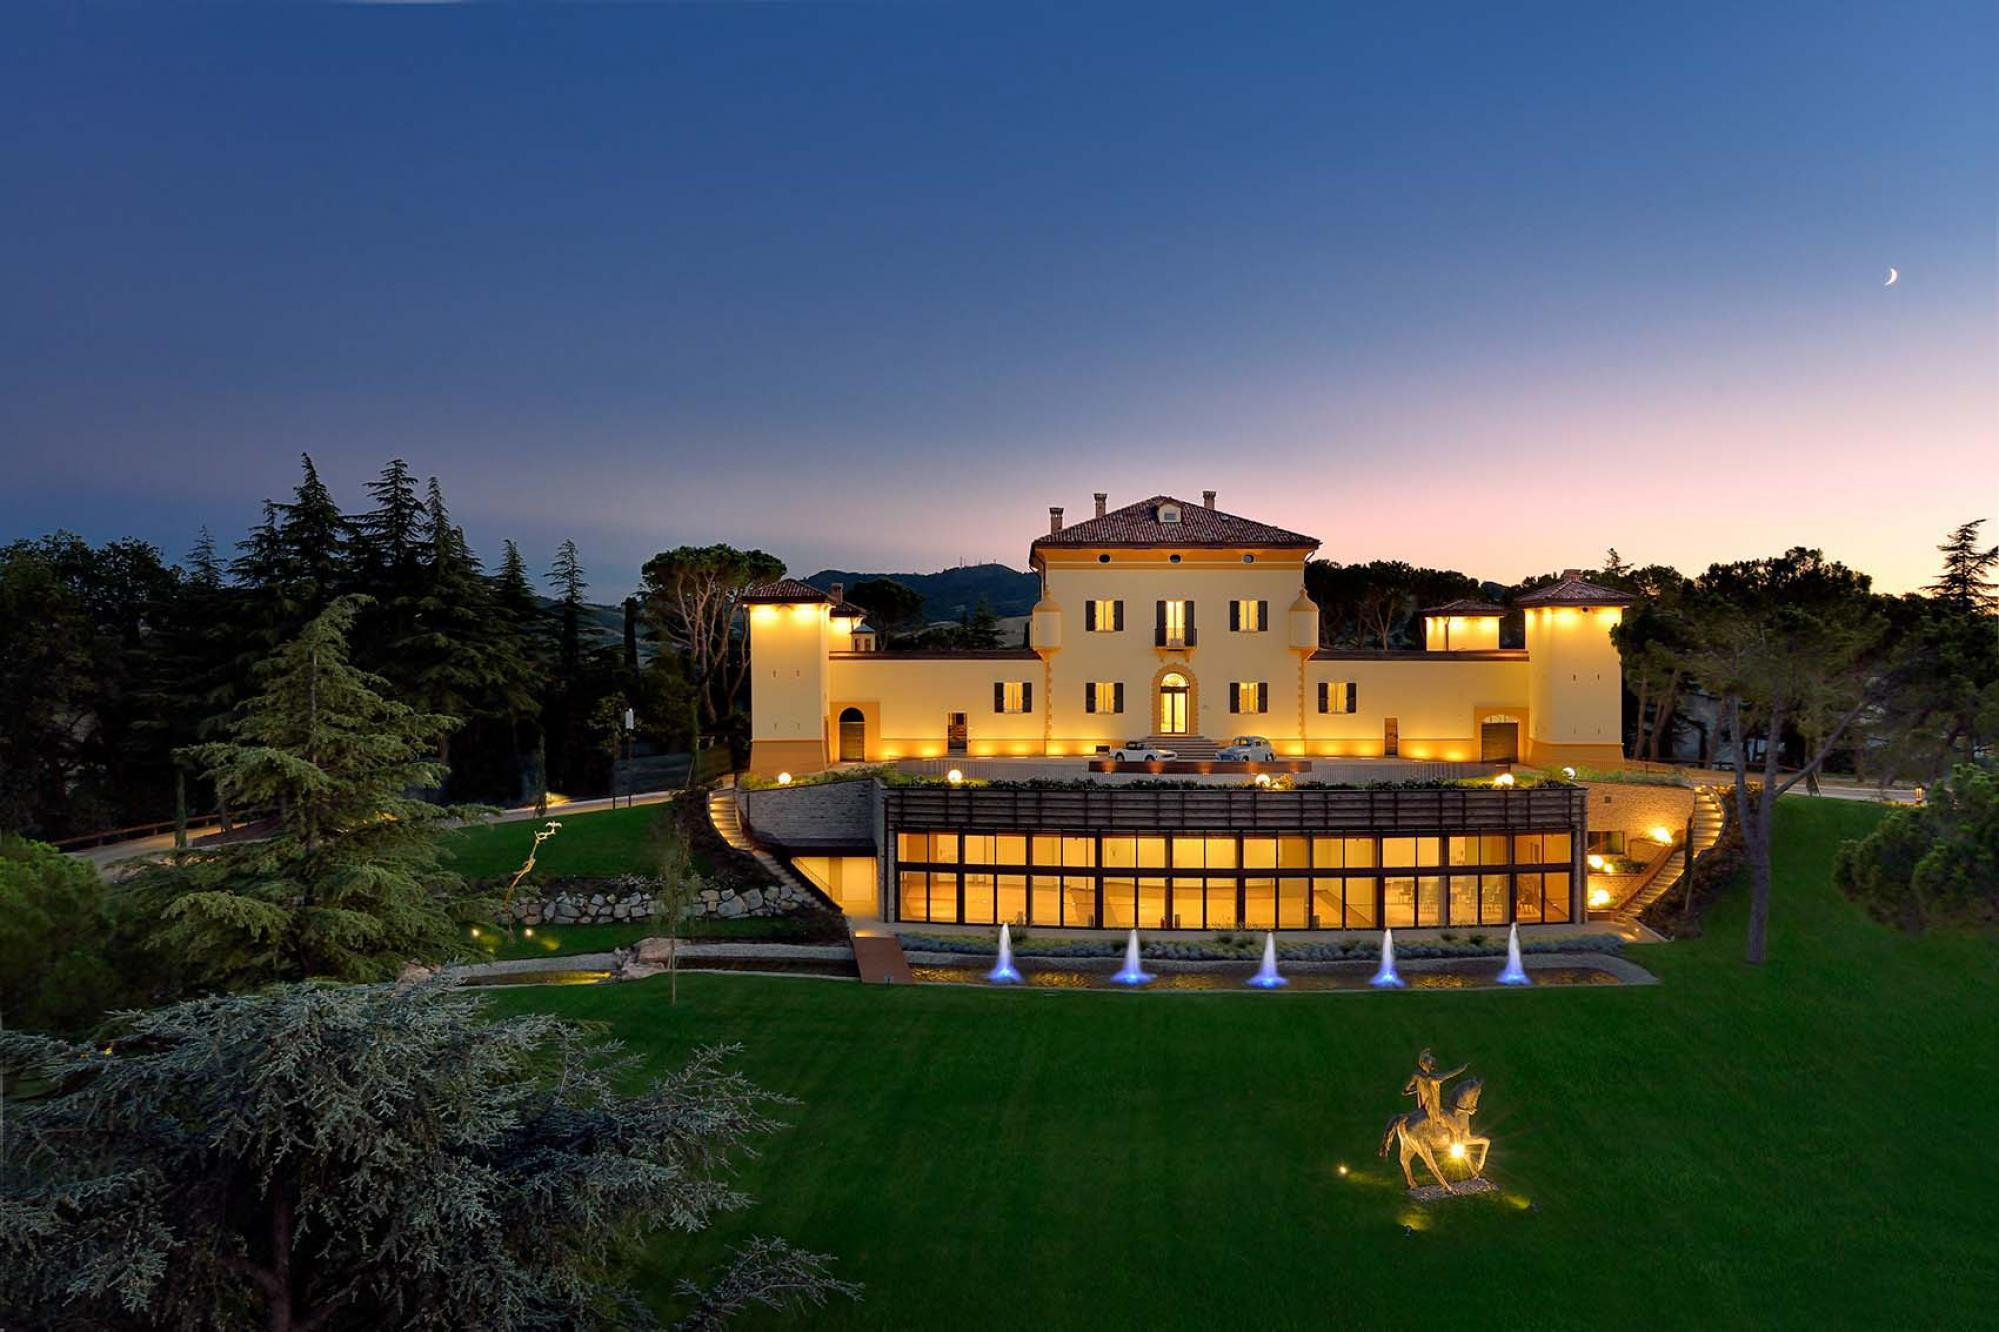 The Palazzo Di Varignana Resort's scenic hotel in sensational Northern Italy.